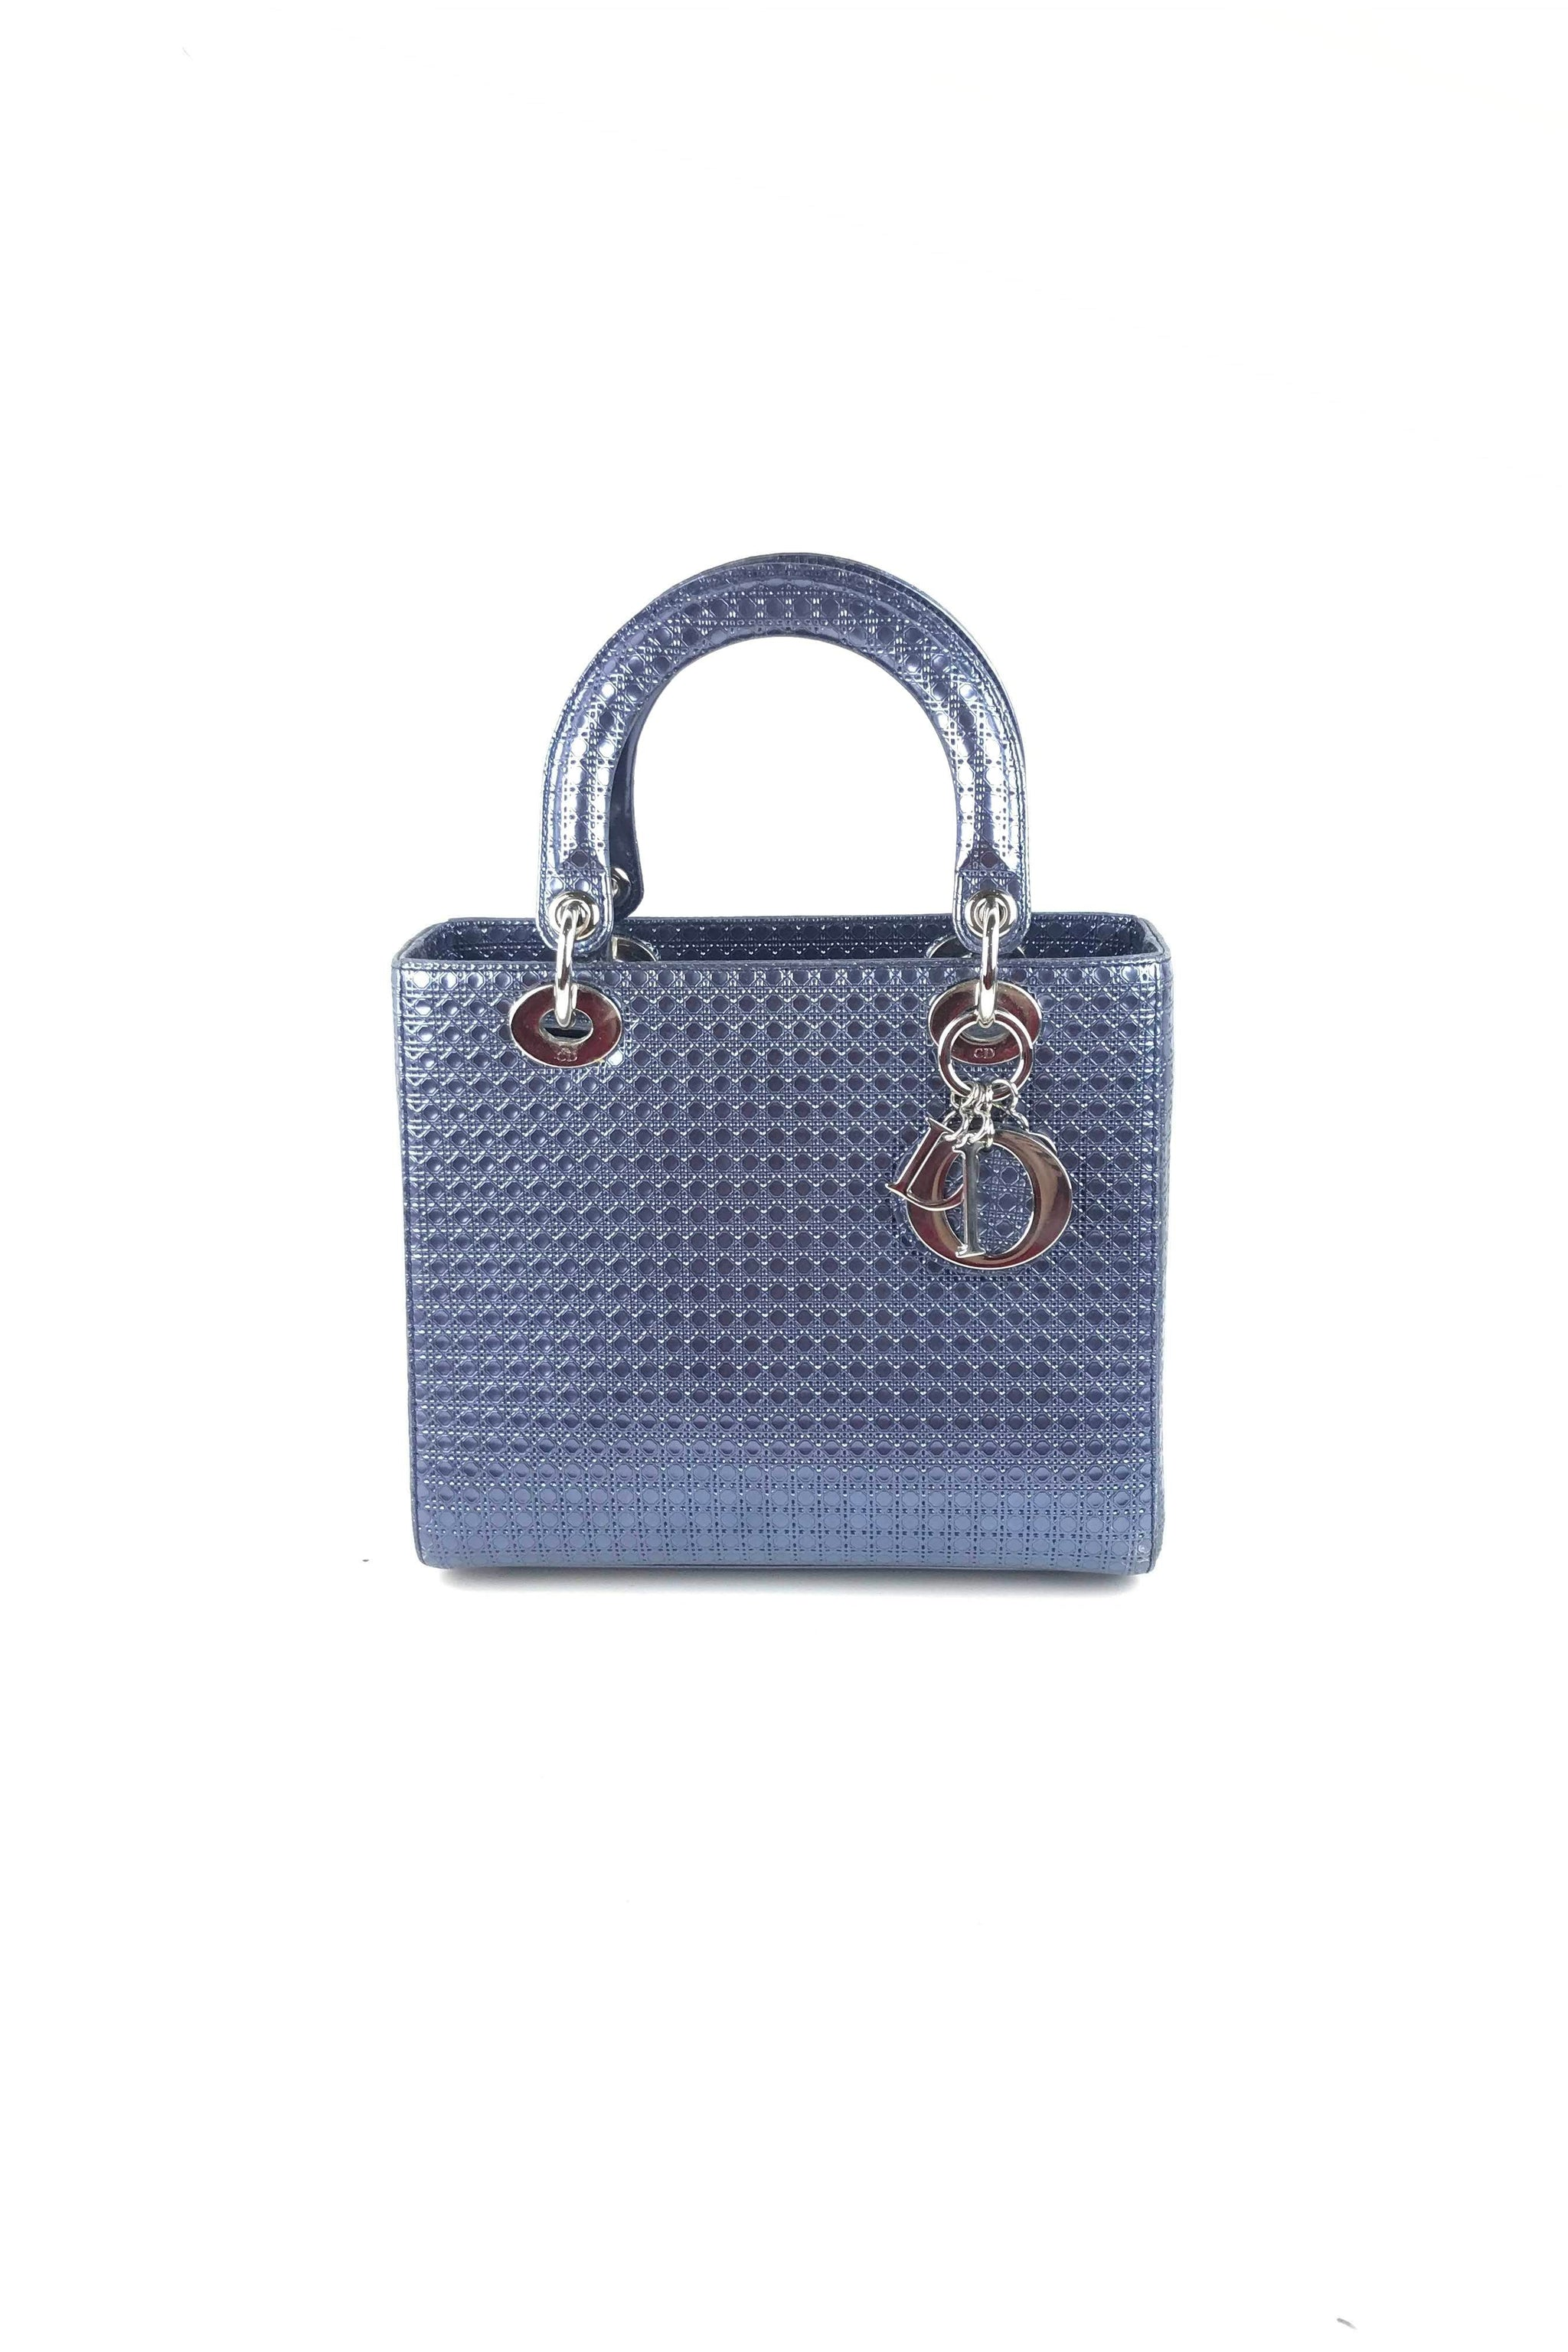 8e2eb2096e2 Metallic Blue Perforated Calfskin Micro-Cannage Medium Lady Dior W SHW –  Haute Classics